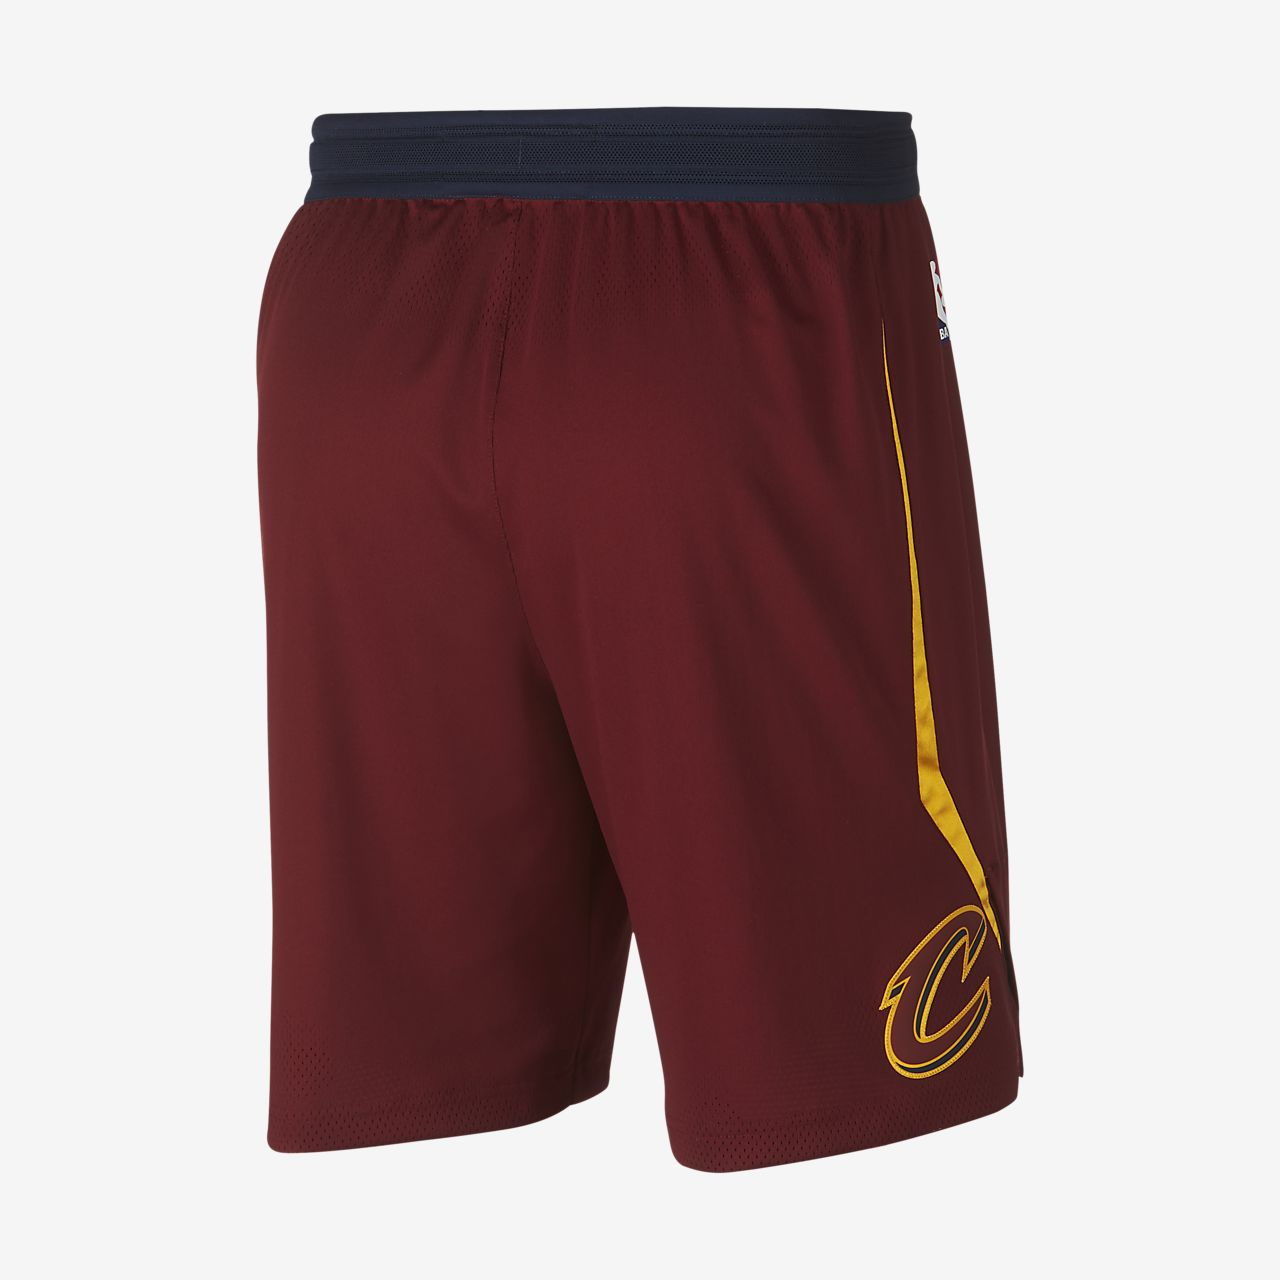 75cc9834533 ... Ανδρικό σορτς NBA Cleveland Cavaliers Nike Icon Edition Authentic